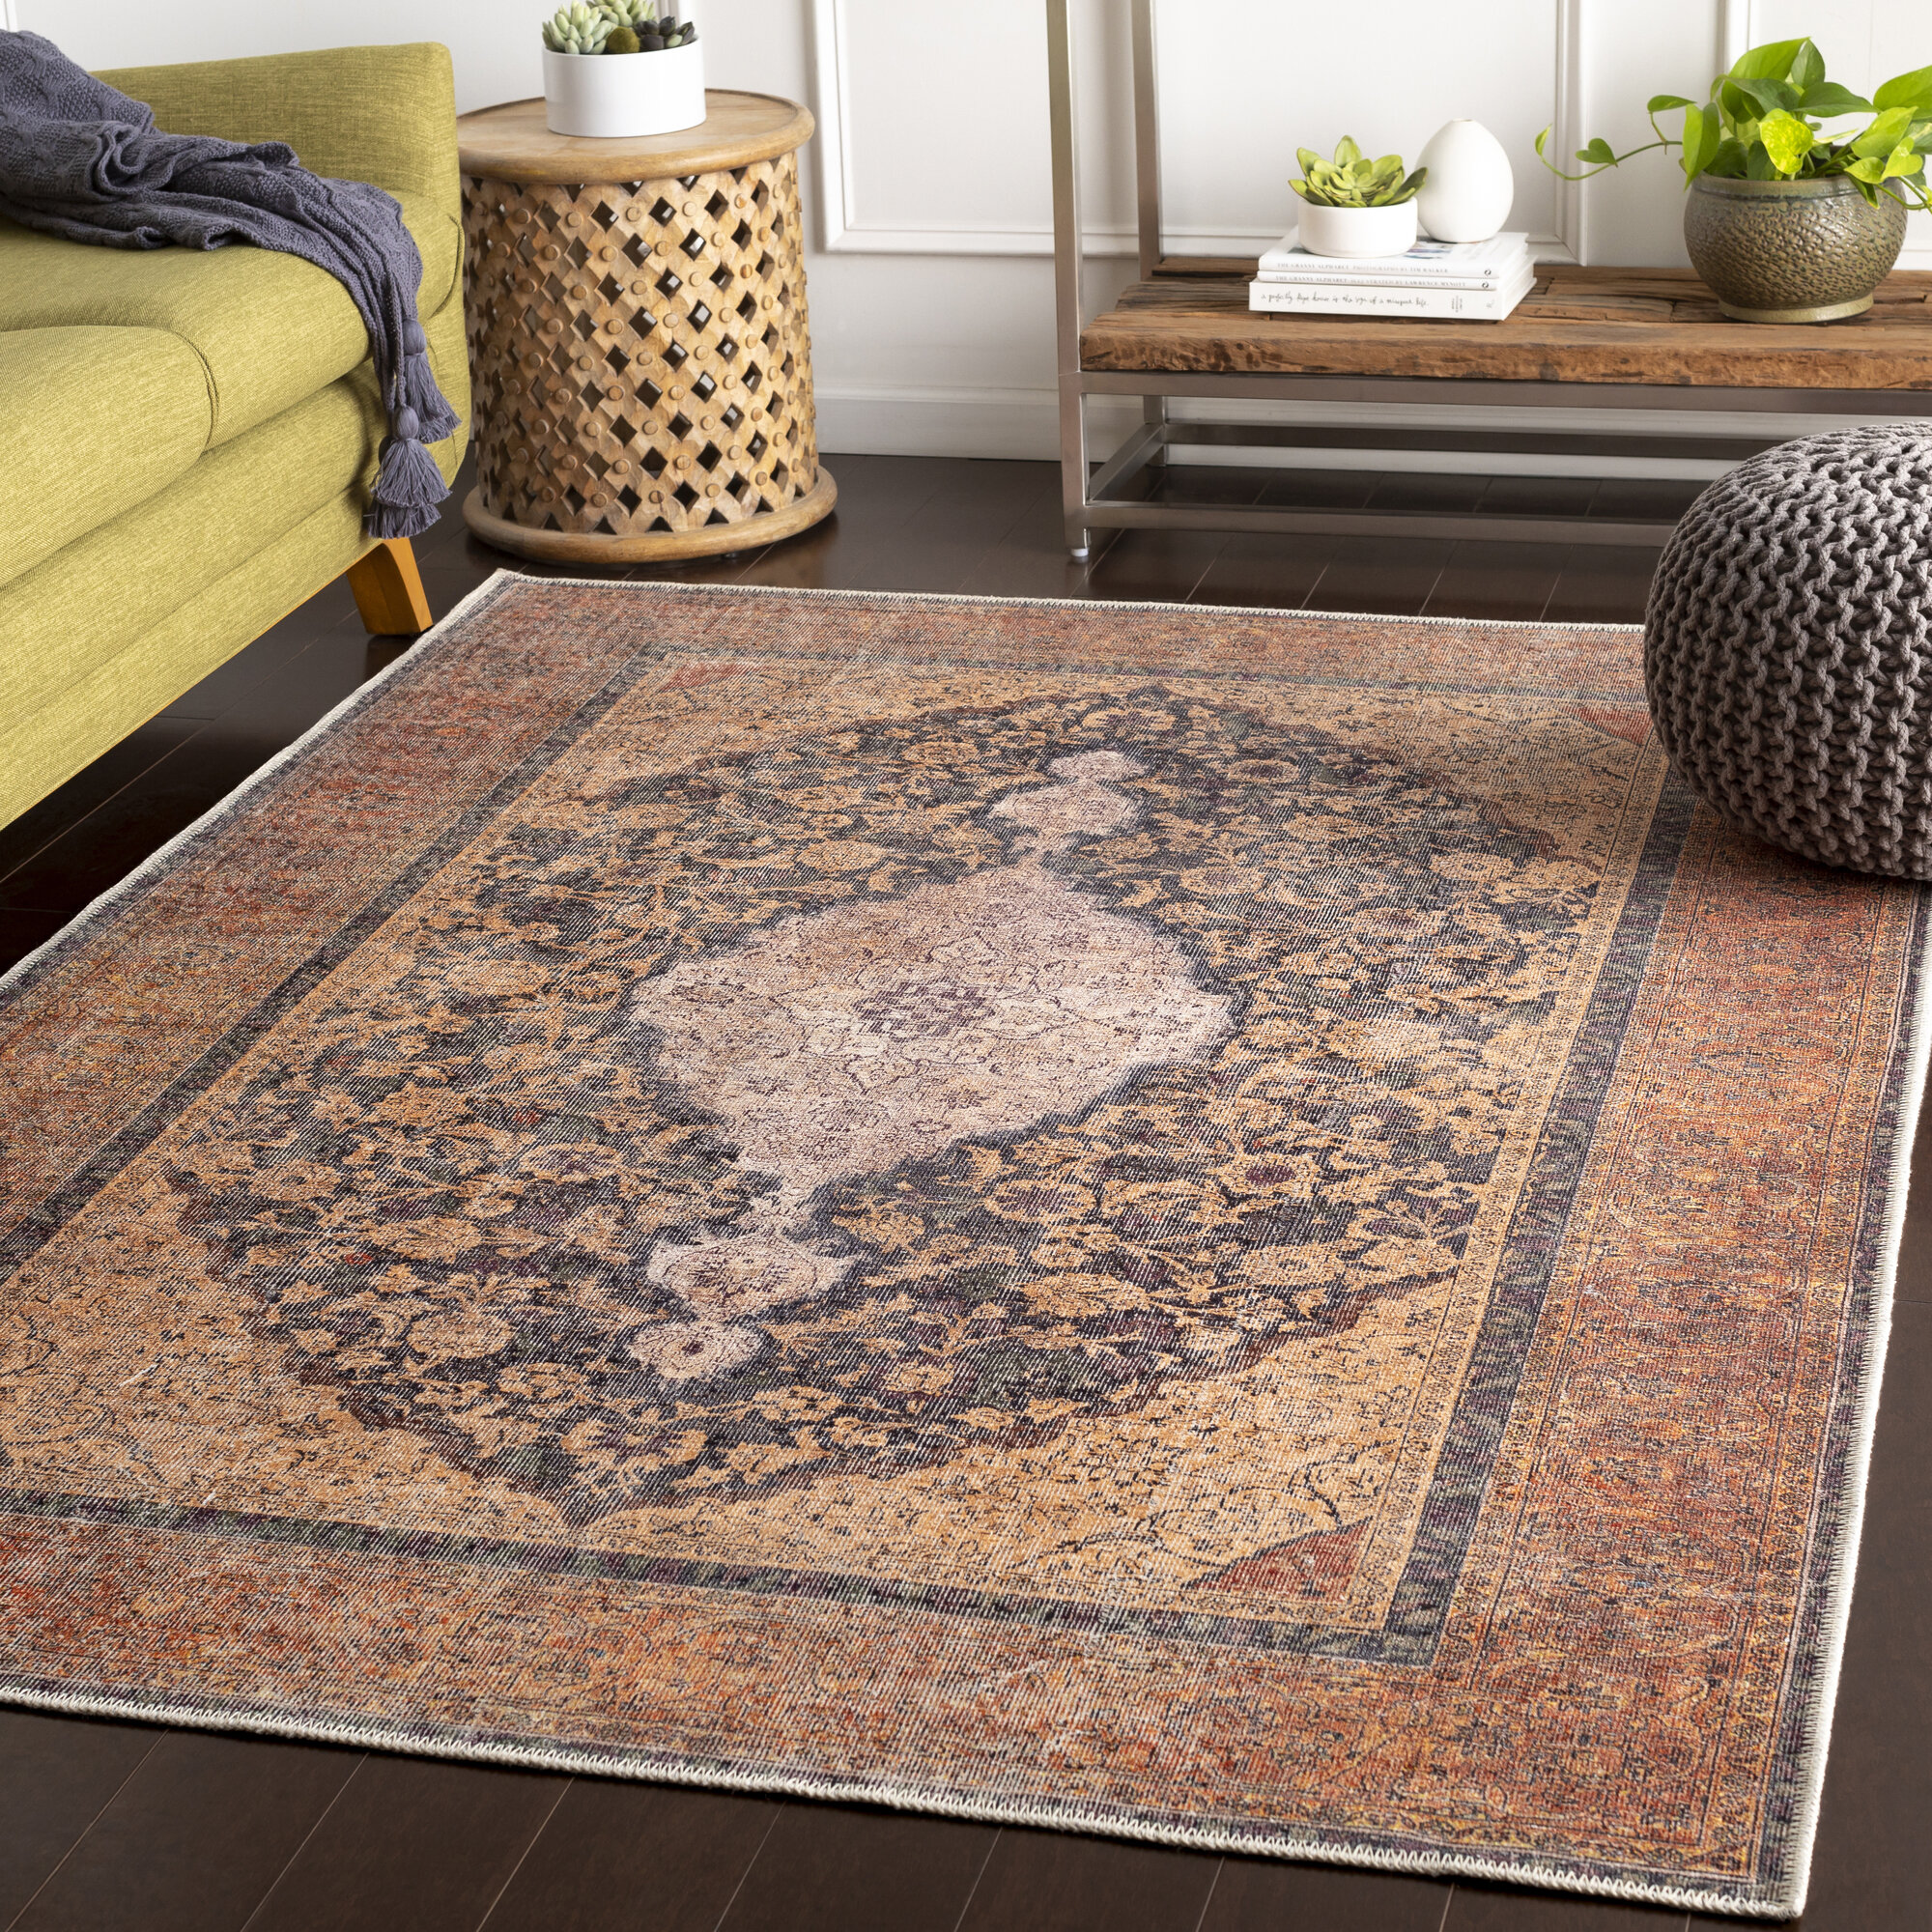 Chenille Turkey Area Rugs You Ll Love In 2021 Wayfair